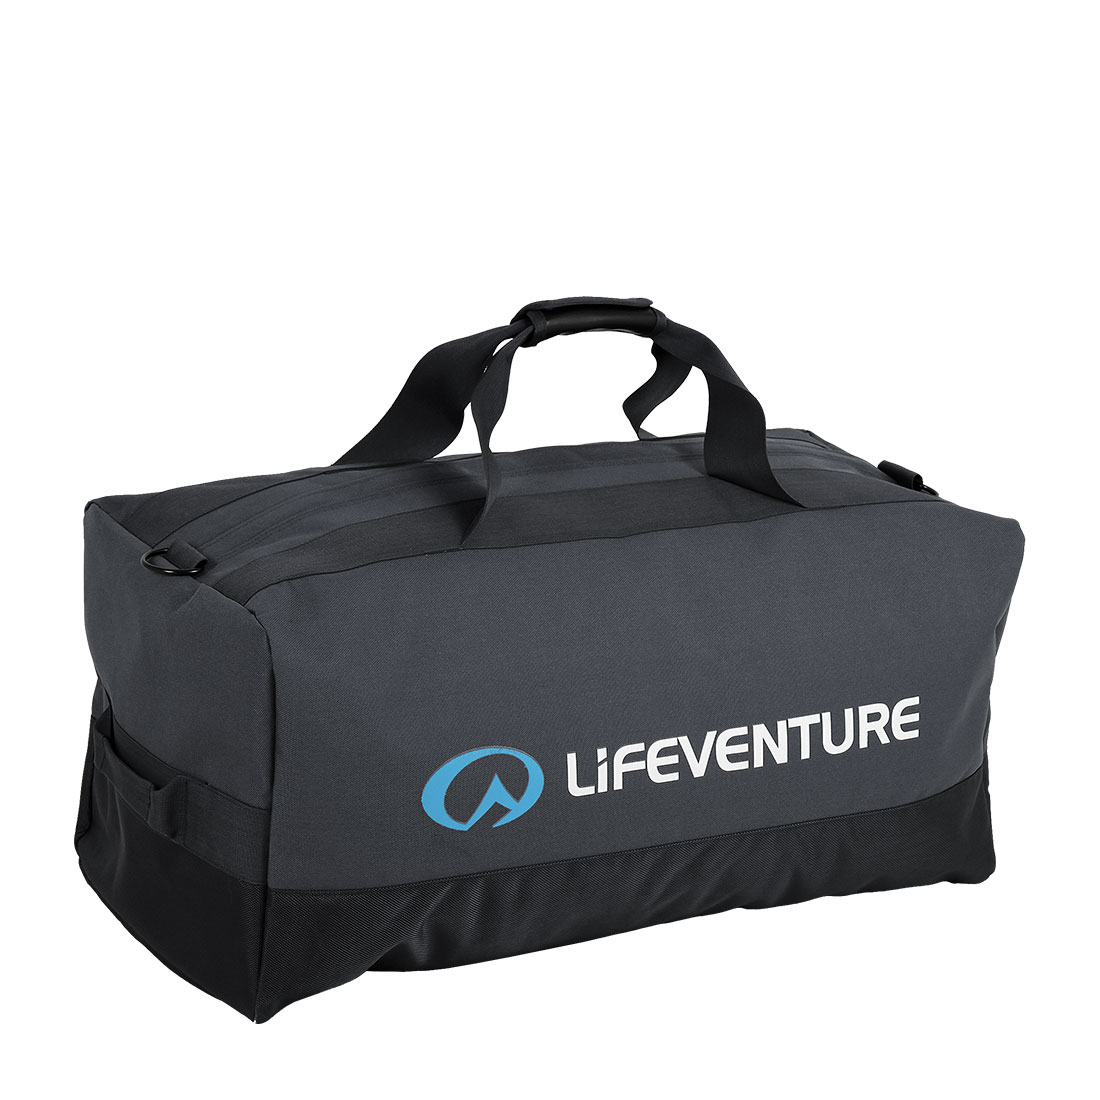 Lifeventure taška Expedition Duffle 100l